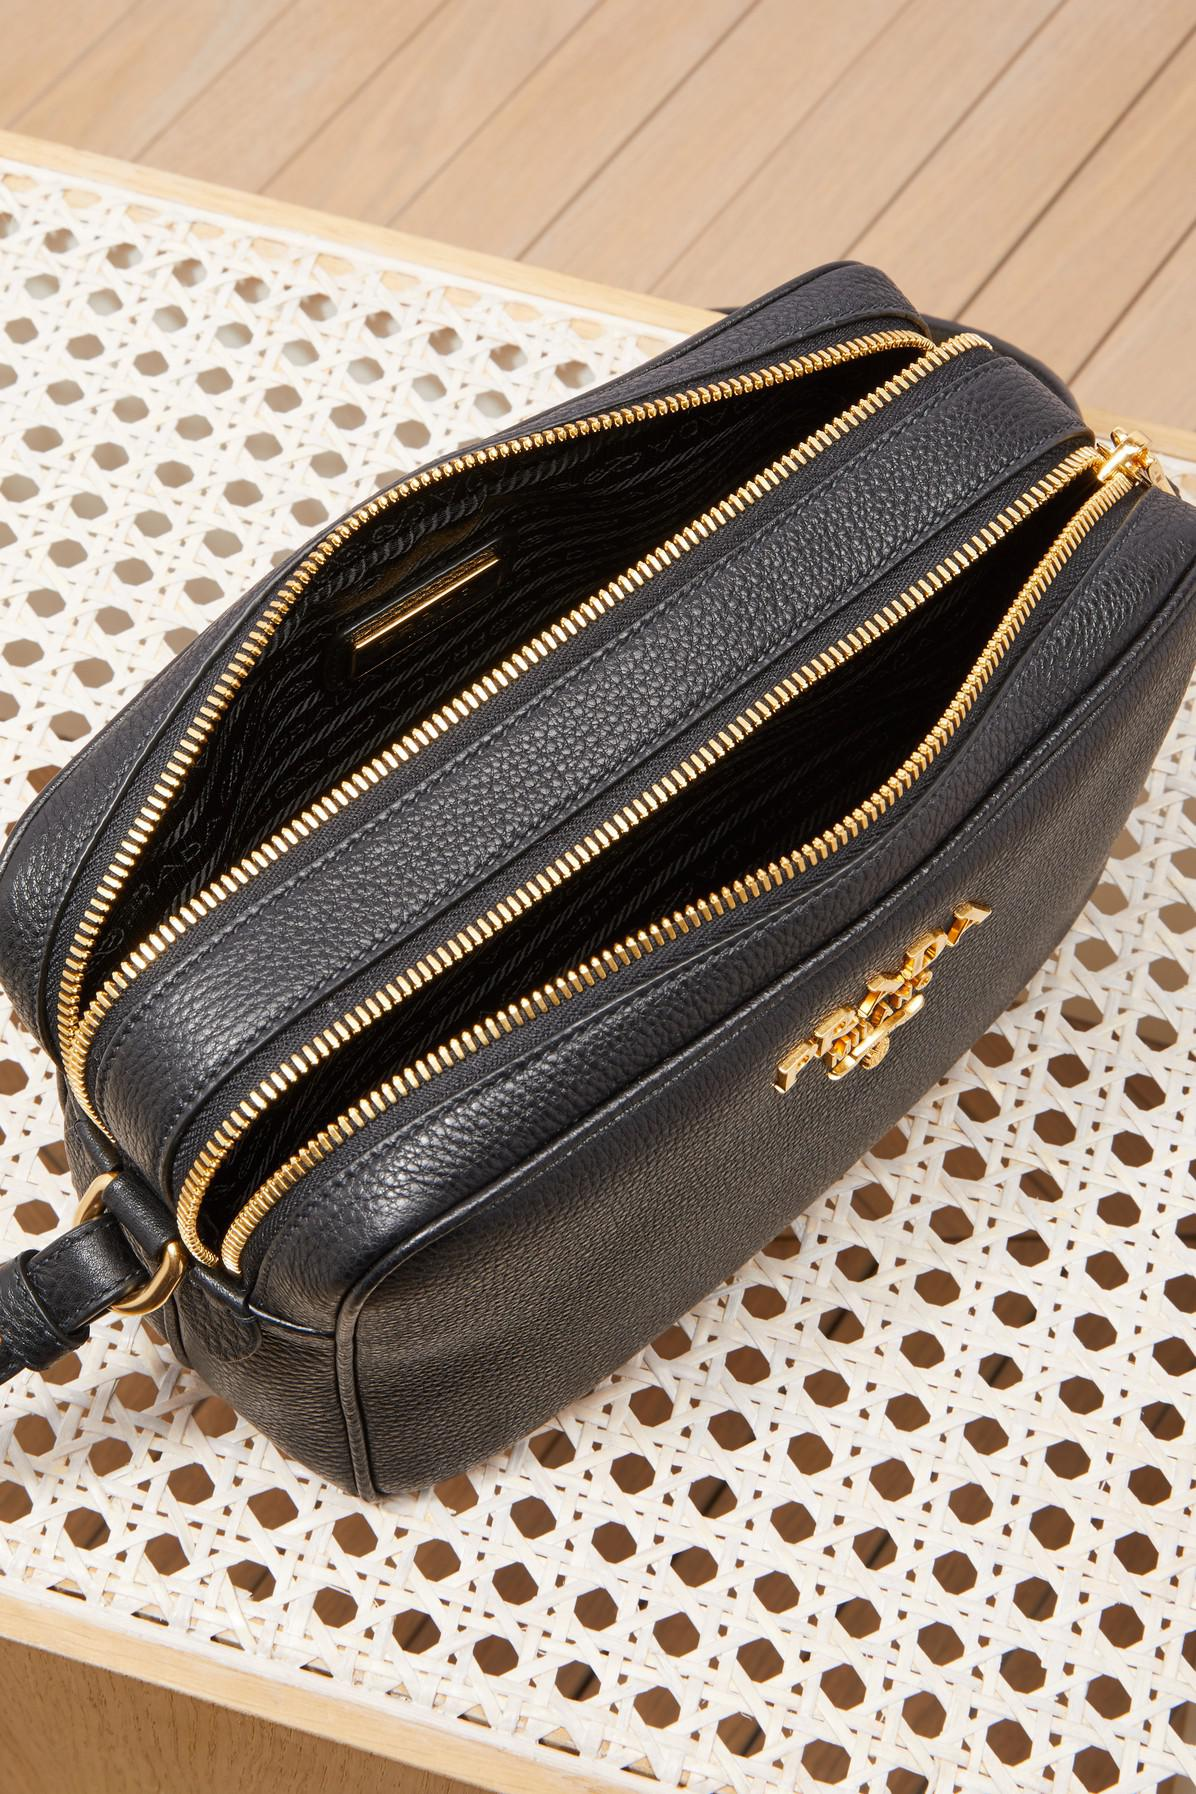 c50d75b95e64ab Prada Caméra Bag With Double Strap in Black - Lyst